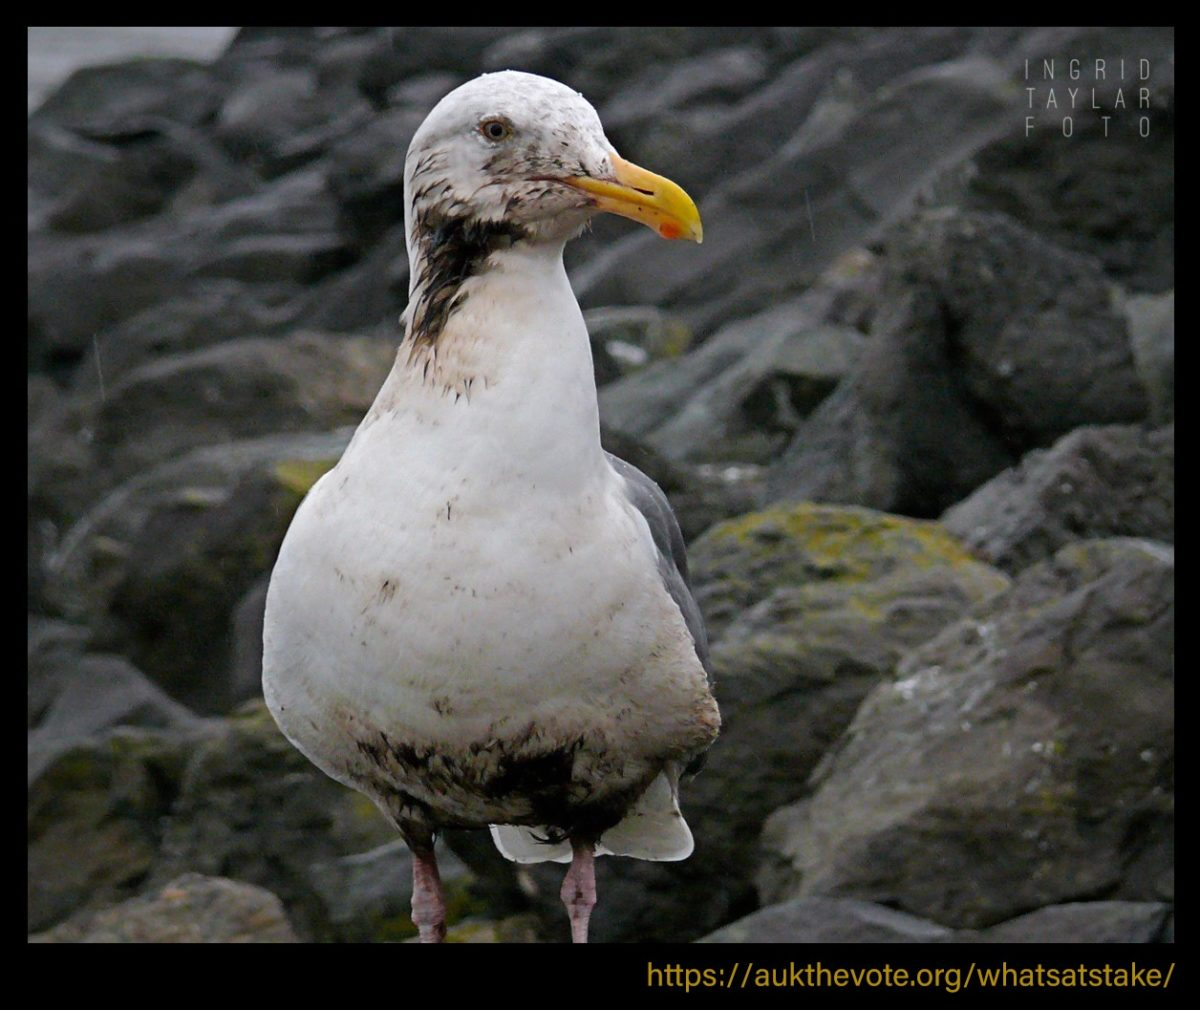 Oiled Gull in Cosco Busan Oil Spill